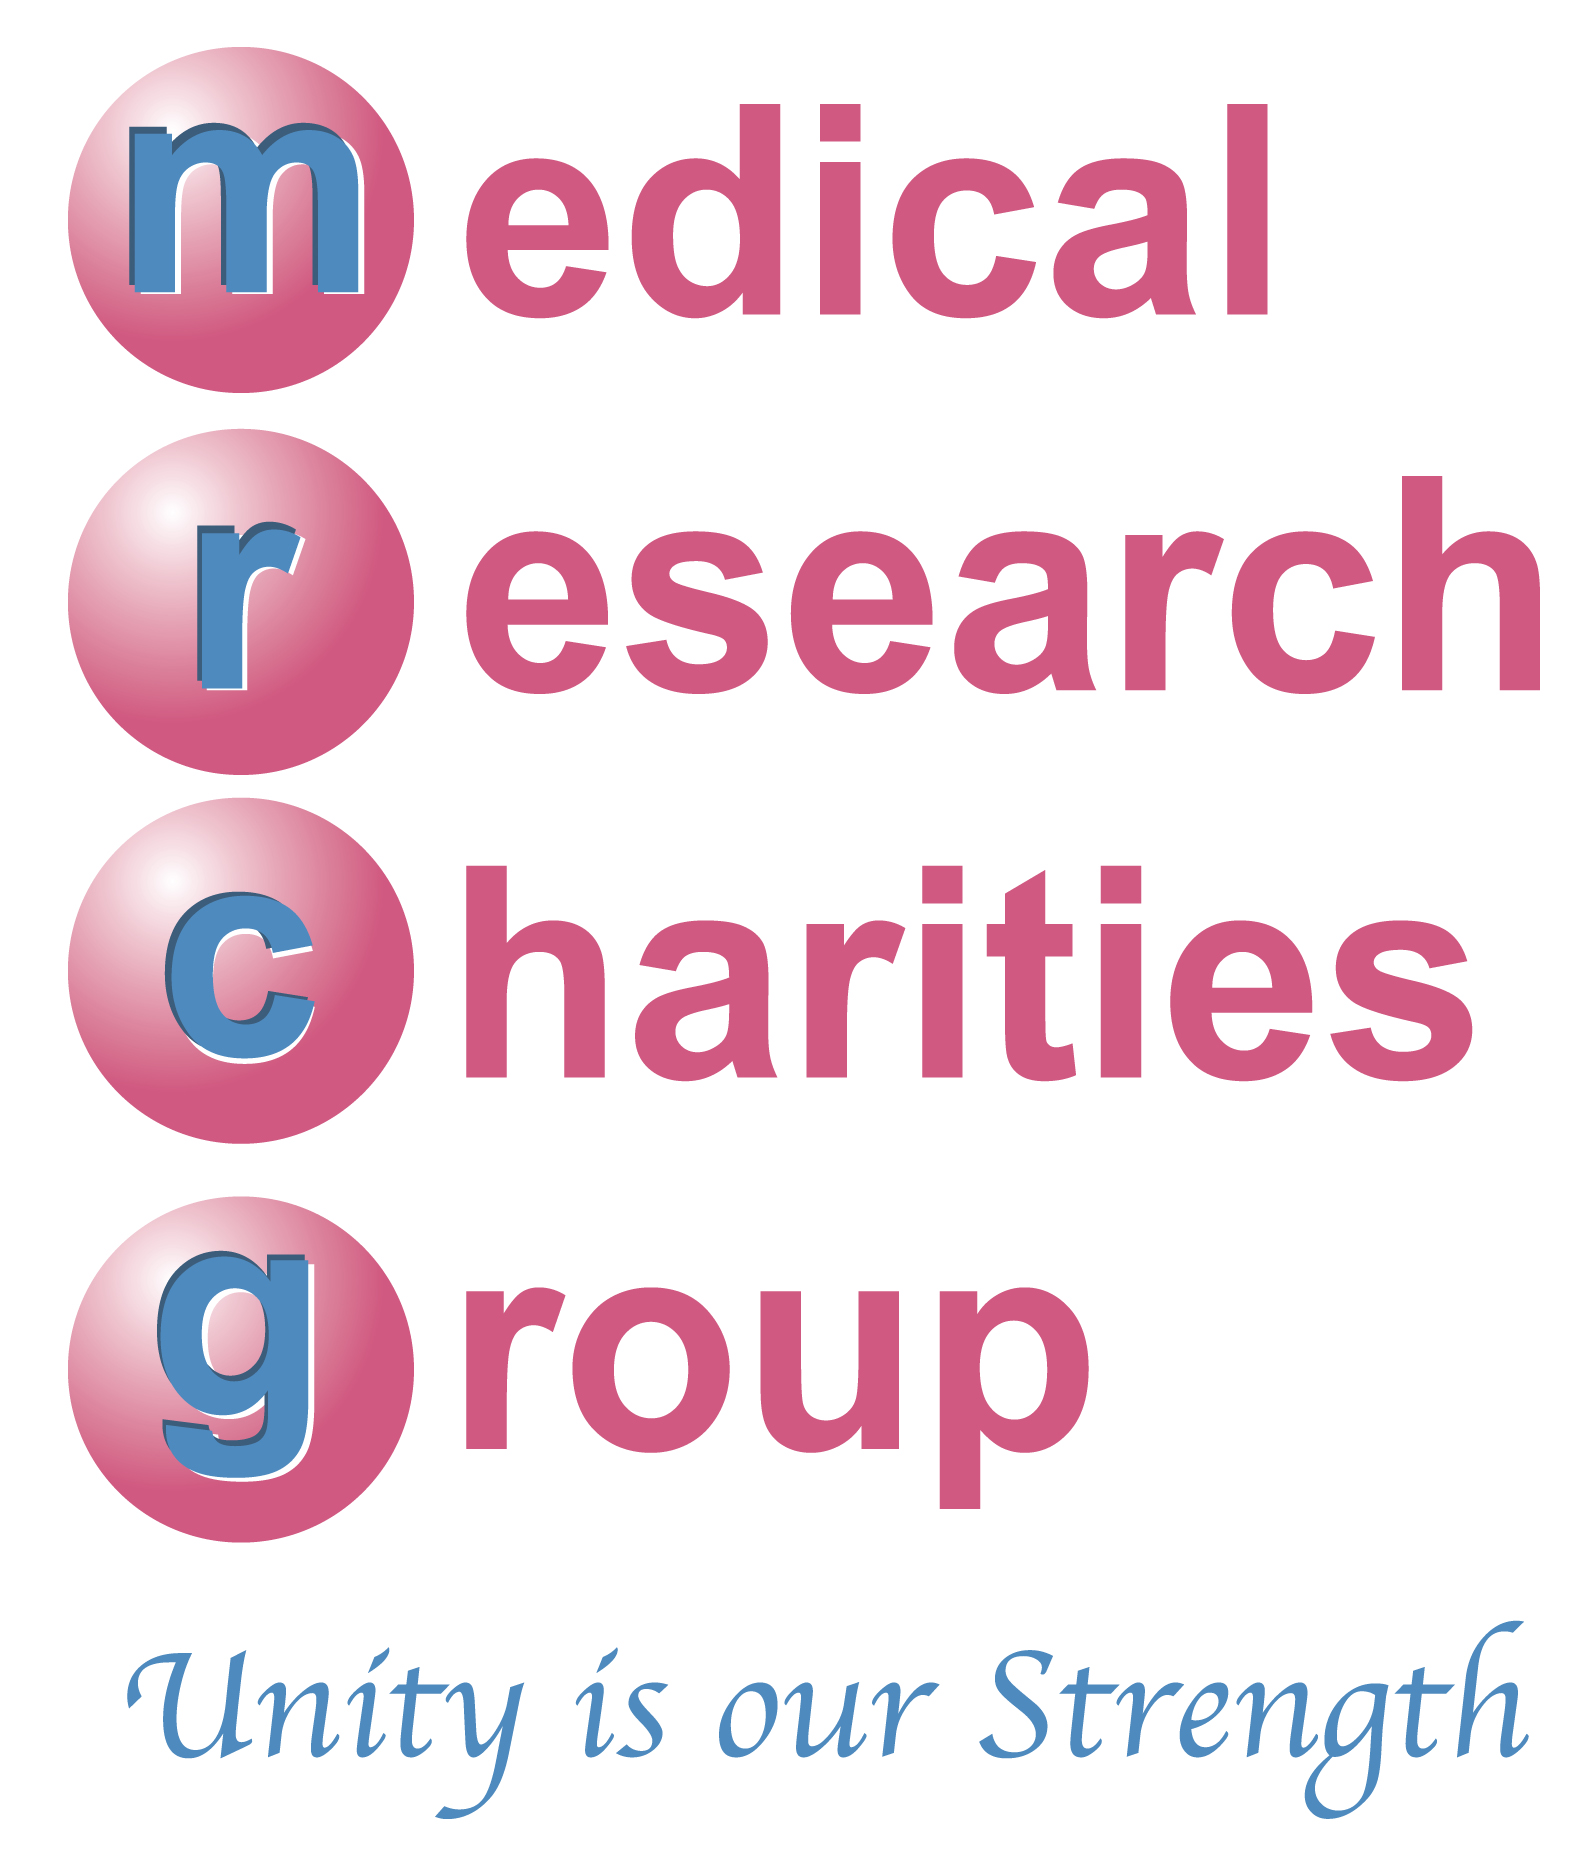 Medical Research Charities Group